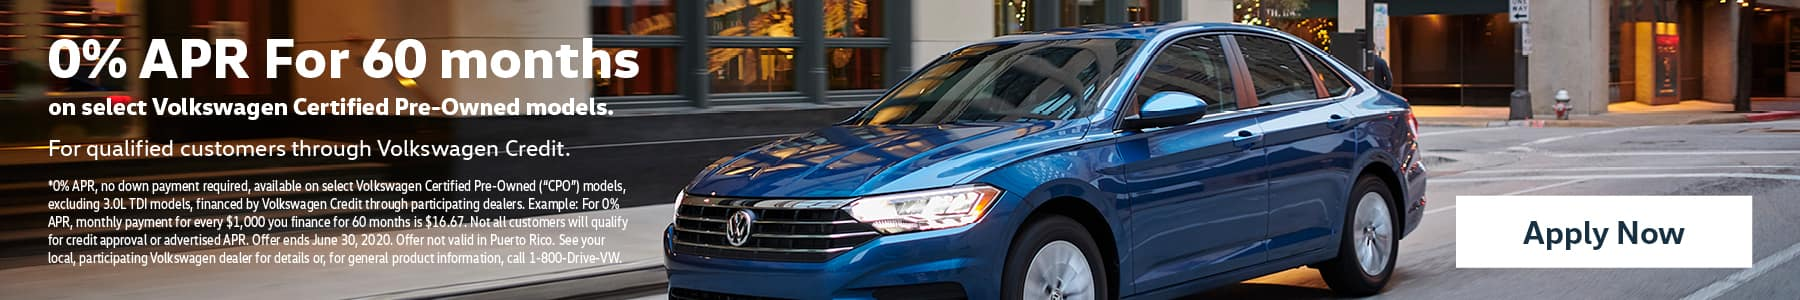 "0% APR For 60 months on select Volkswagen Certified Pre-Owned models. For qualified customers through Volkswagen Credit. *0% APR, no down payment required, available on select Volkswagen Certified Pre-Owned (""CPO"") models, excluding 3.0L TDI models, financed by Volkswagen Credit through participating dealers. Example: For 0% APR, monthly payment for every $1,000 you finance for 60 months is $16.67. Not all customers will qualify for credit approval or advertised APR. Offer ends June 30, 2020. Offer not valid in Puerto Rico. See your local, participating Volkswagen dealer for details or, for general product information, call 1-800-Drive-VW. Apply now."